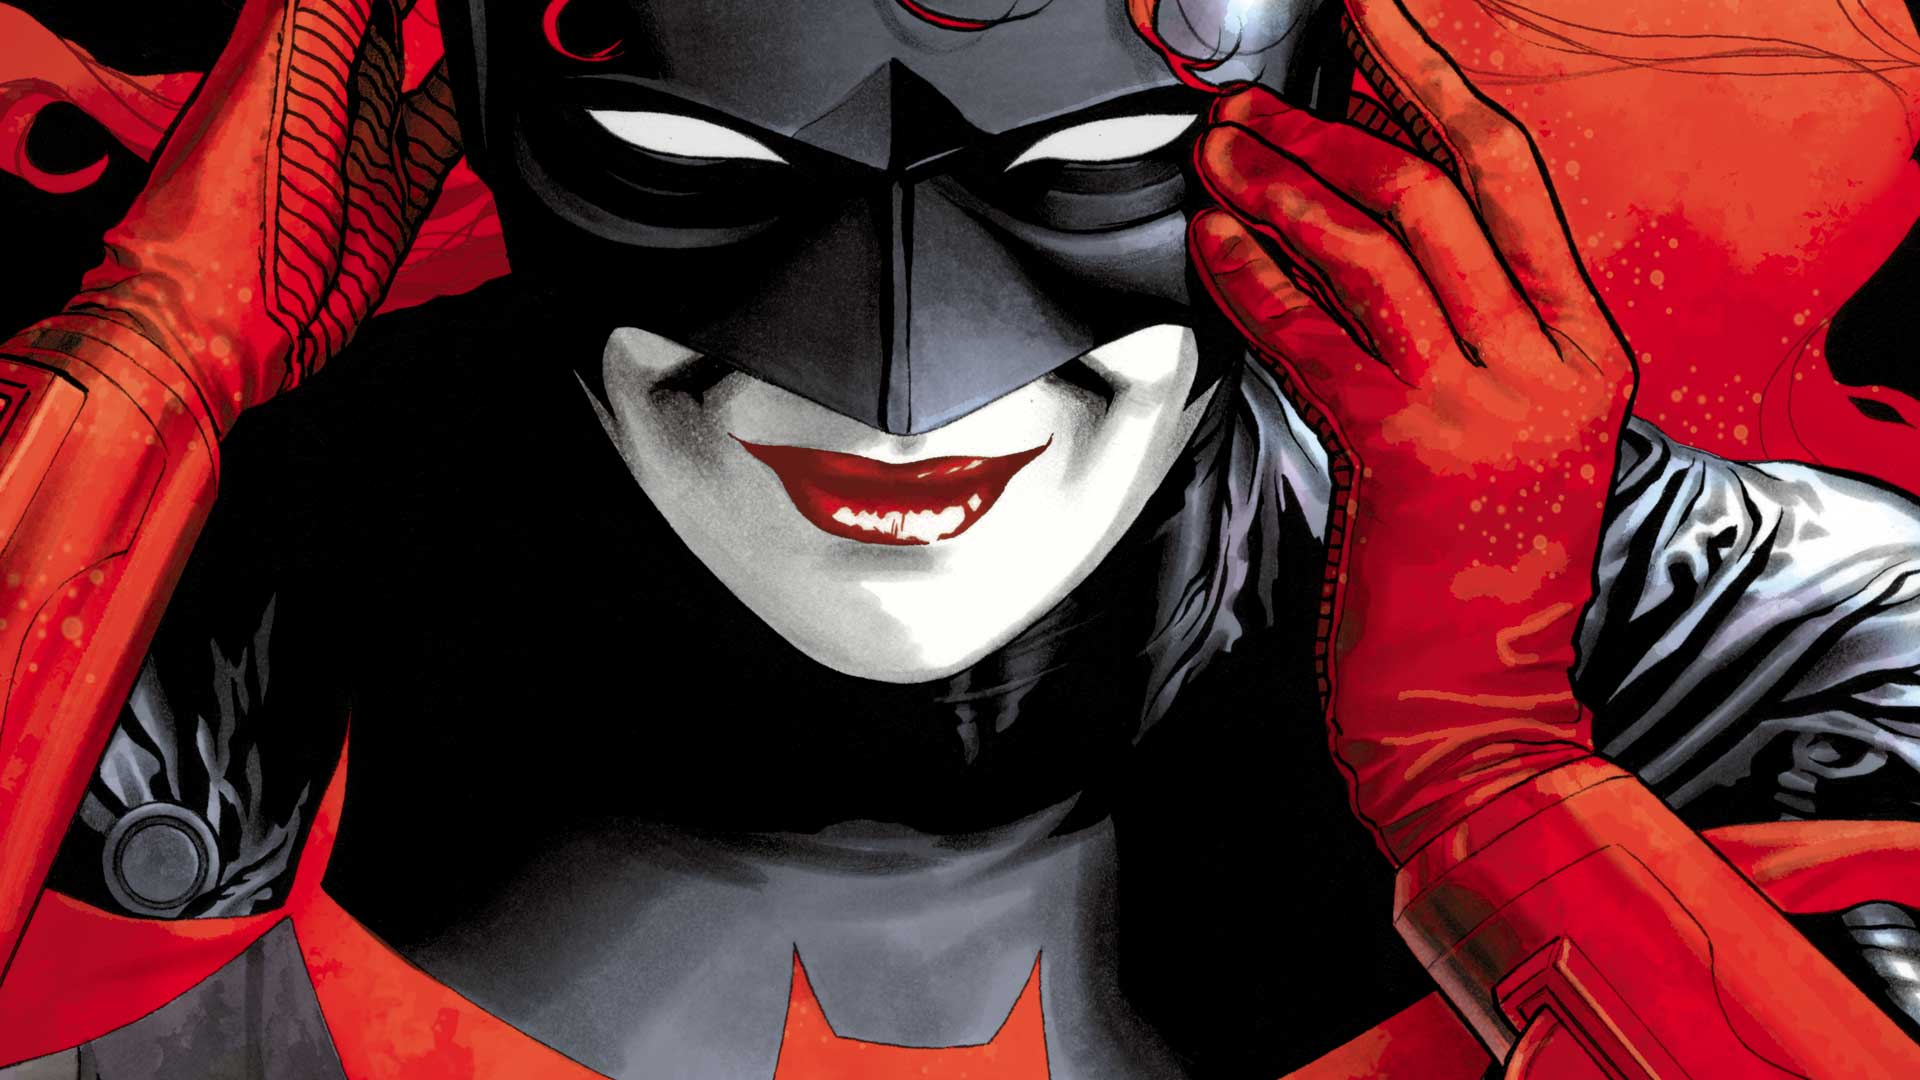 Batwoman is coming to the Arrowverse in the next crossover event screenshot